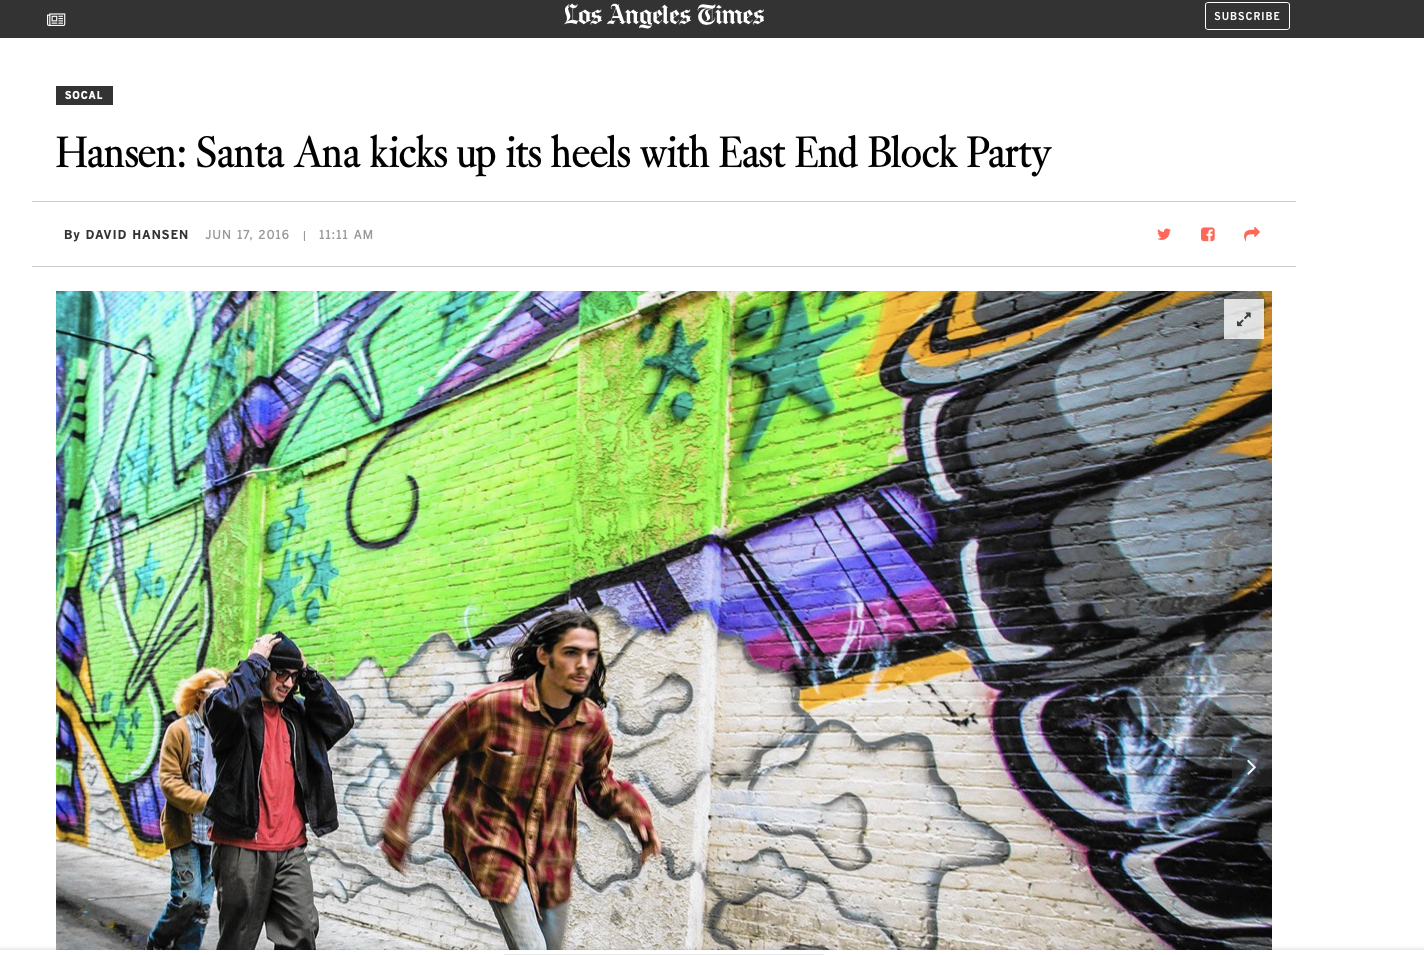 """Santa Ana kicks up its heels with East End Block Party"" -"